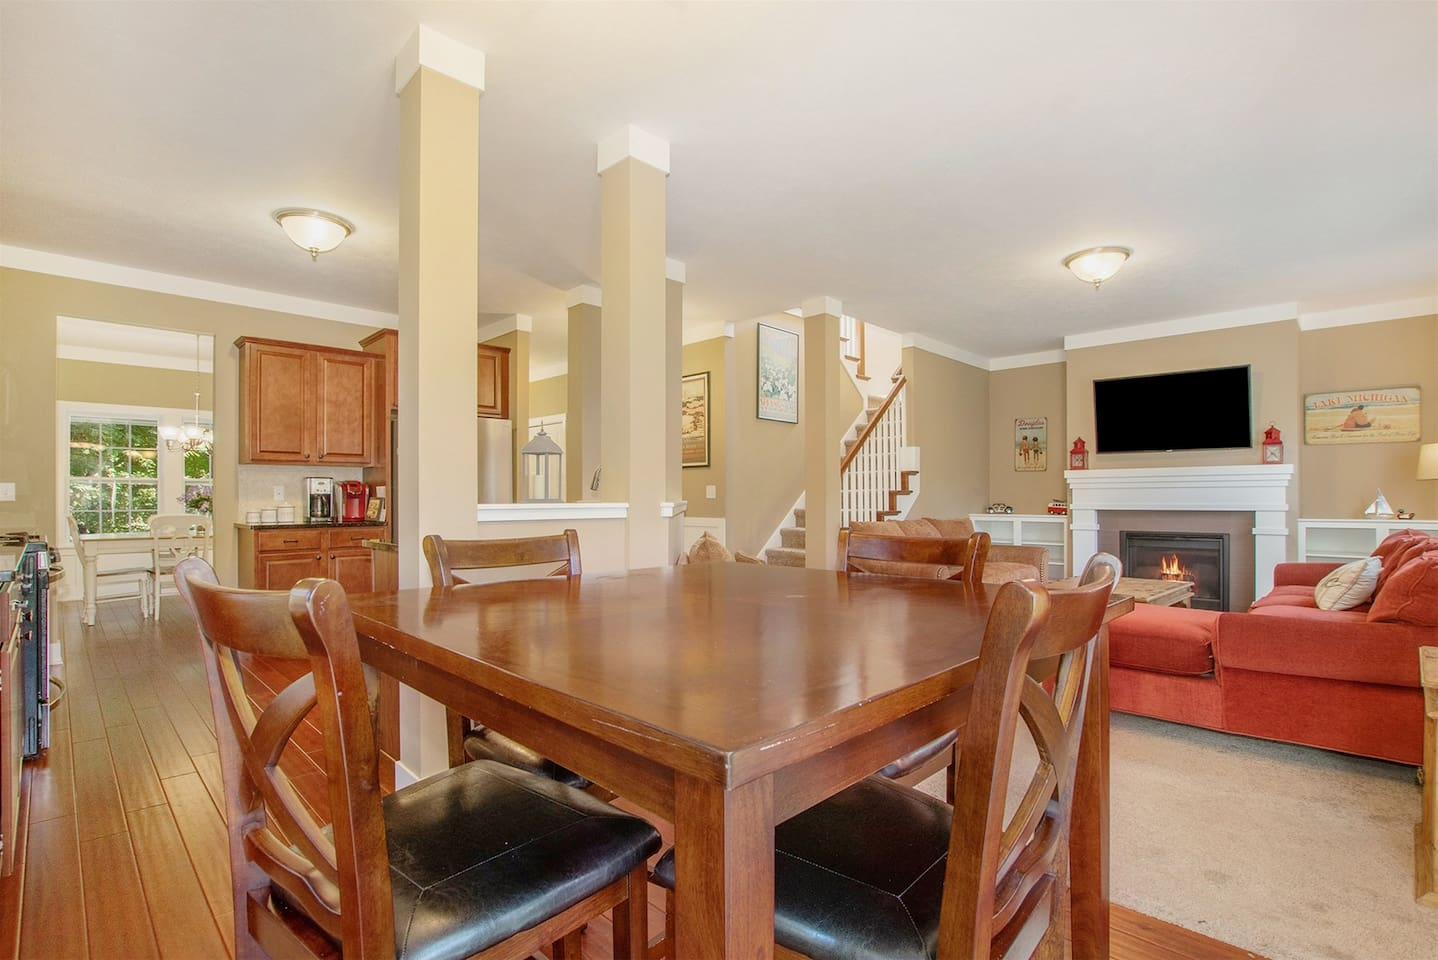 Silverberry Acres has an open concept floor plan with lots of space to visit with your loved ones